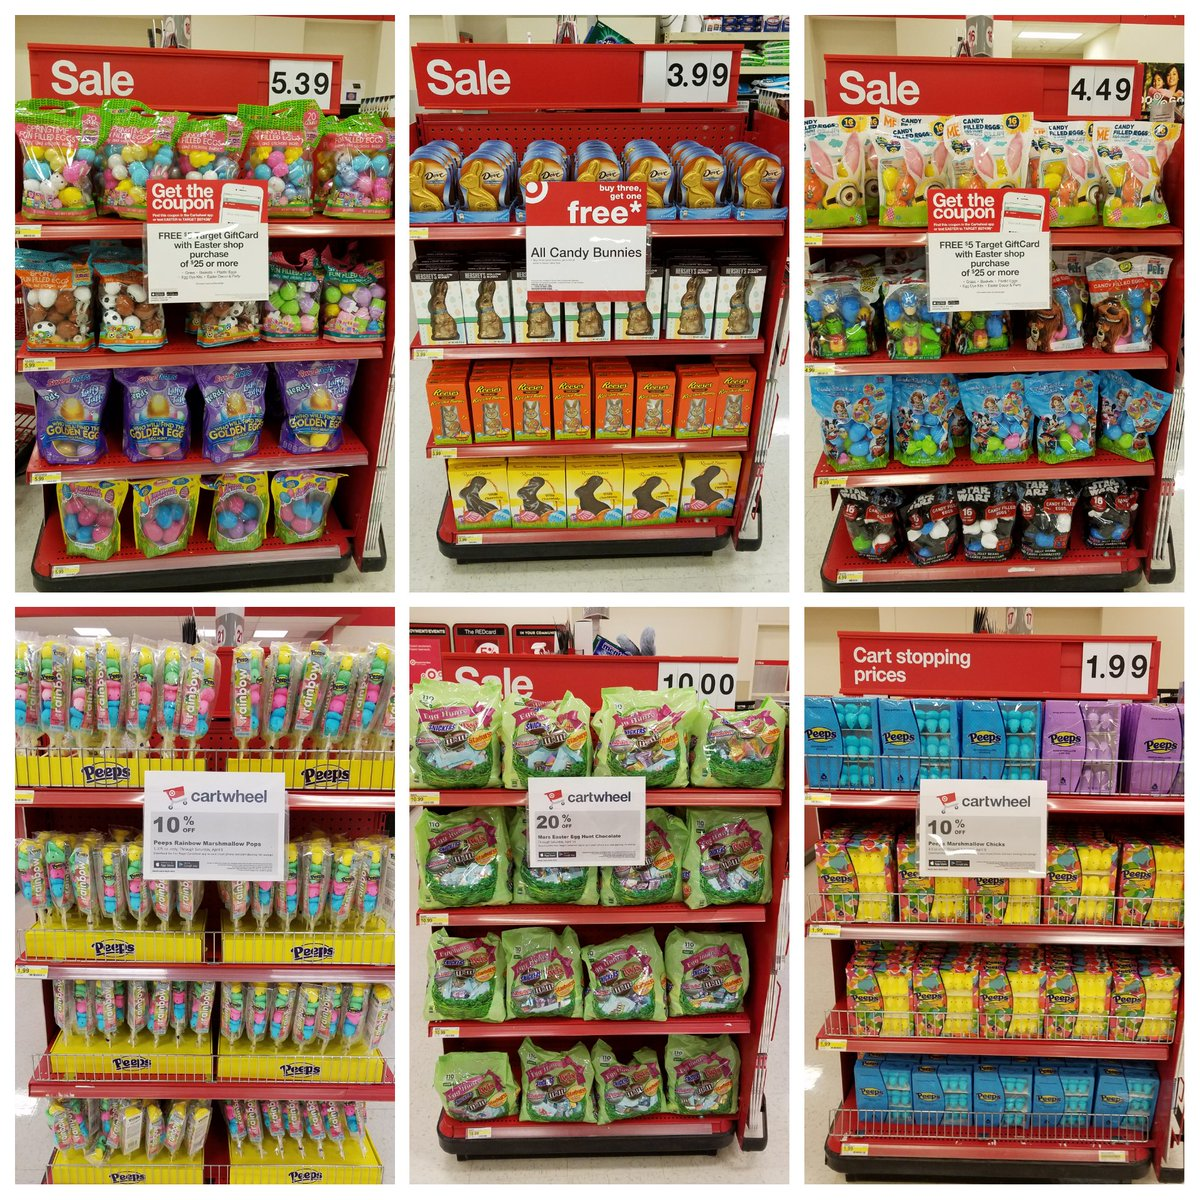 Easter baskets full of savings here at our front lanes! #T2320ModelStore #Cartwheel @AnitaELovato @KennecitoSTL @RonD303 @johnp_sheehan<br>http://pic.twitter.com/fEIui2BwWk